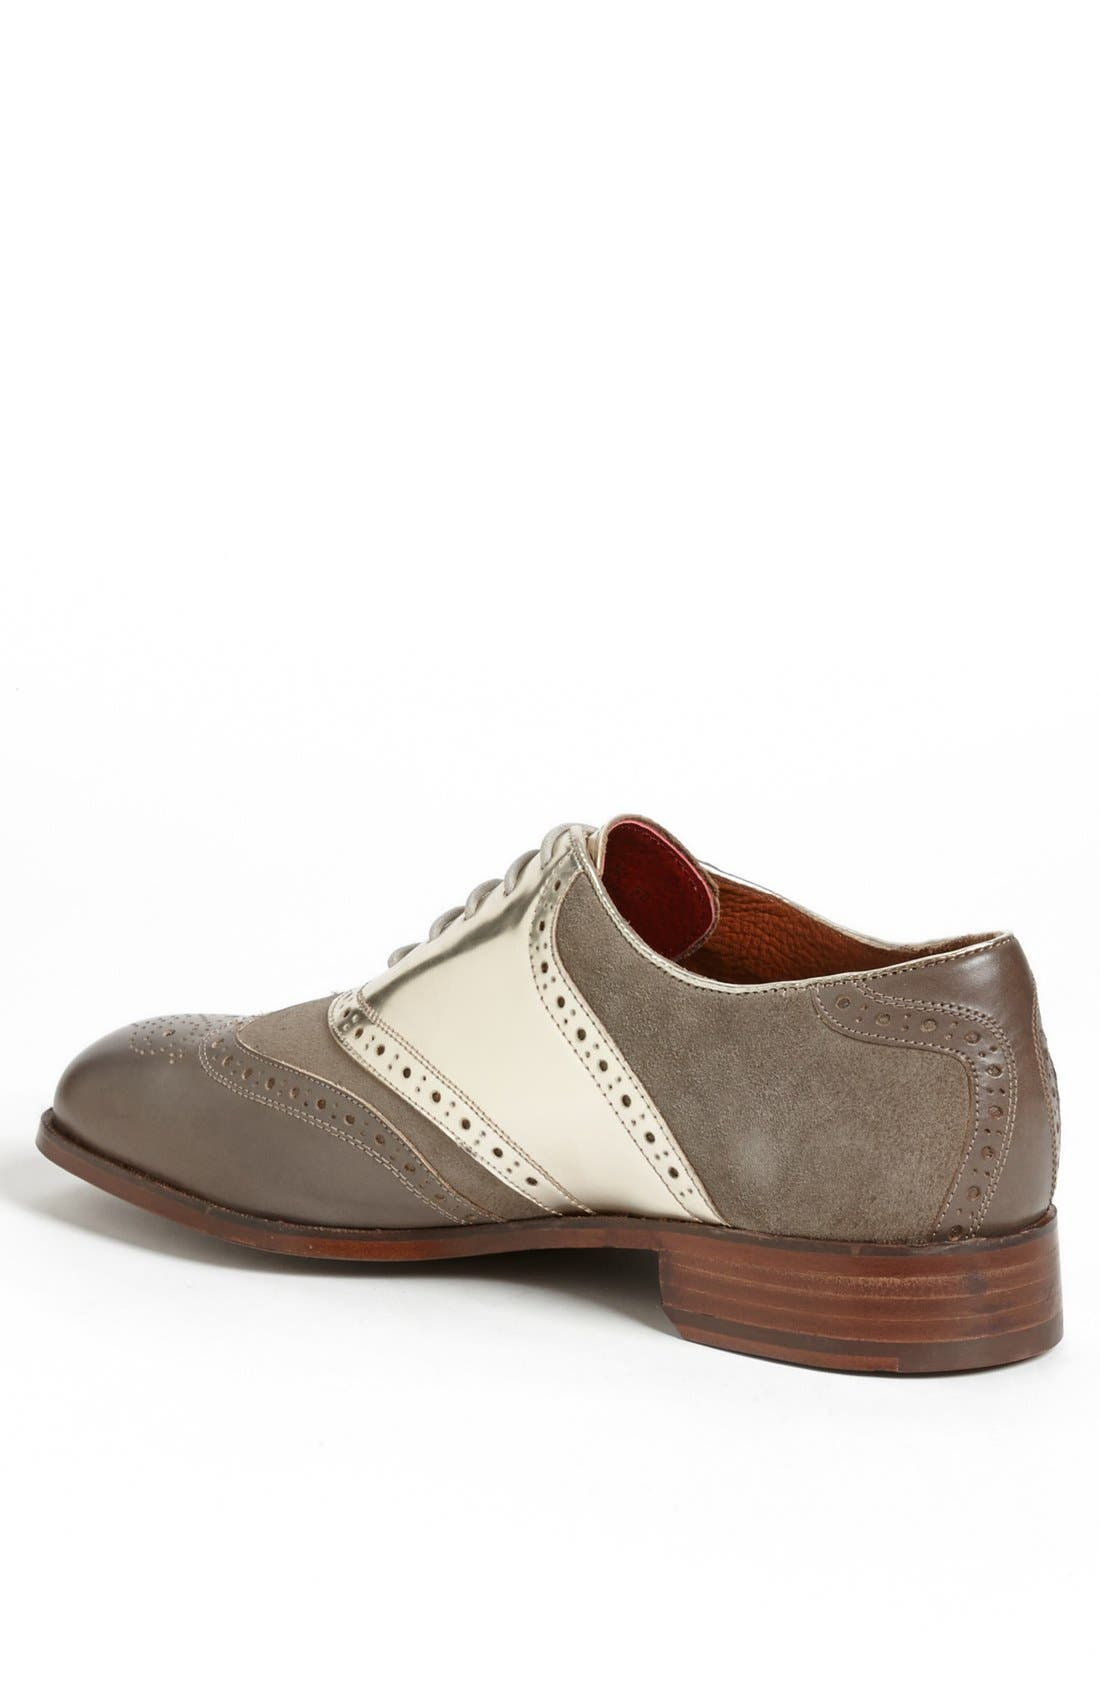 Alternate Image 2  - Florsheim by Duckie Brown 'Wing' Saddle Shoe